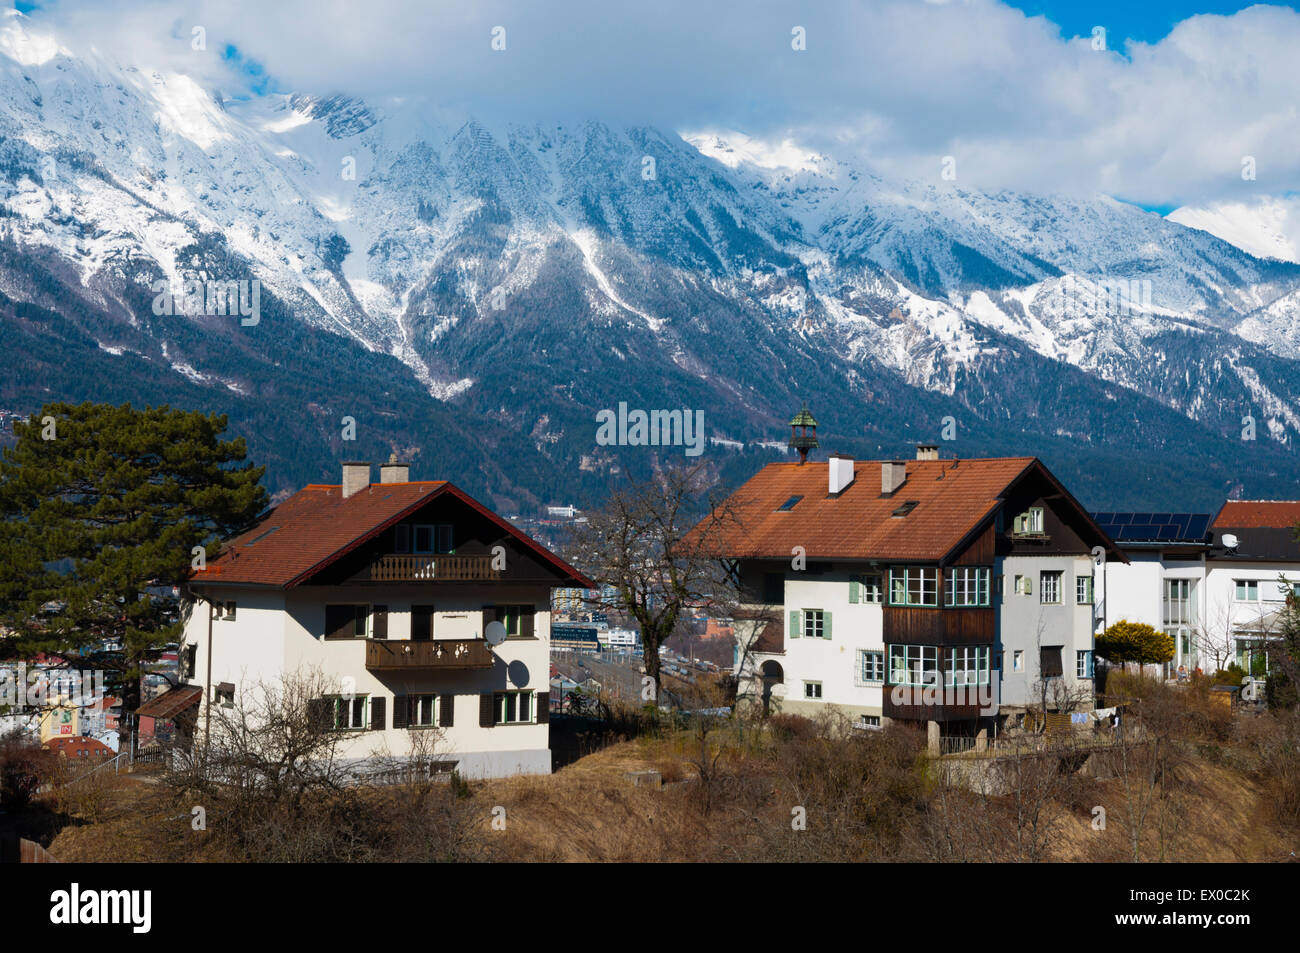 innsbruck houses stockfotos innsbruck houses bilder alamy. Black Bedroom Furniture Sets. Home Design Ideas